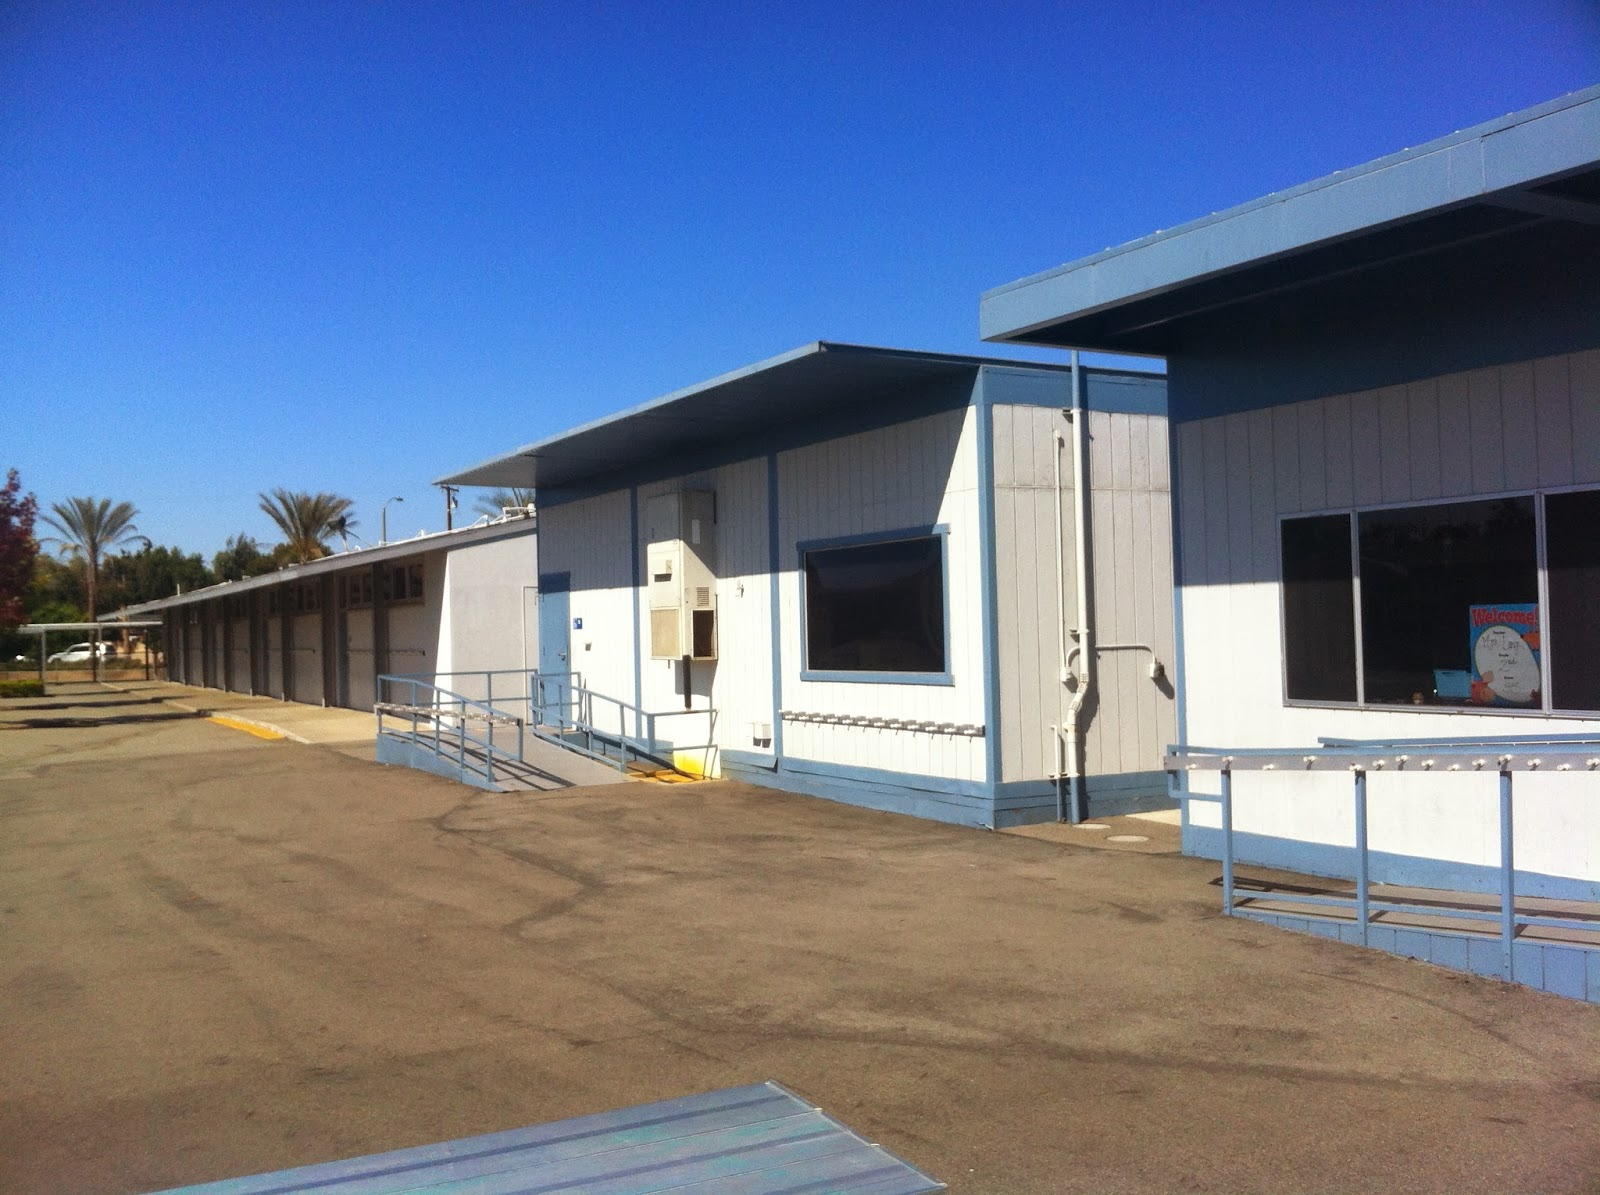 Modular Classroom For Rent ~ How to plan for a modular building or portable classroom